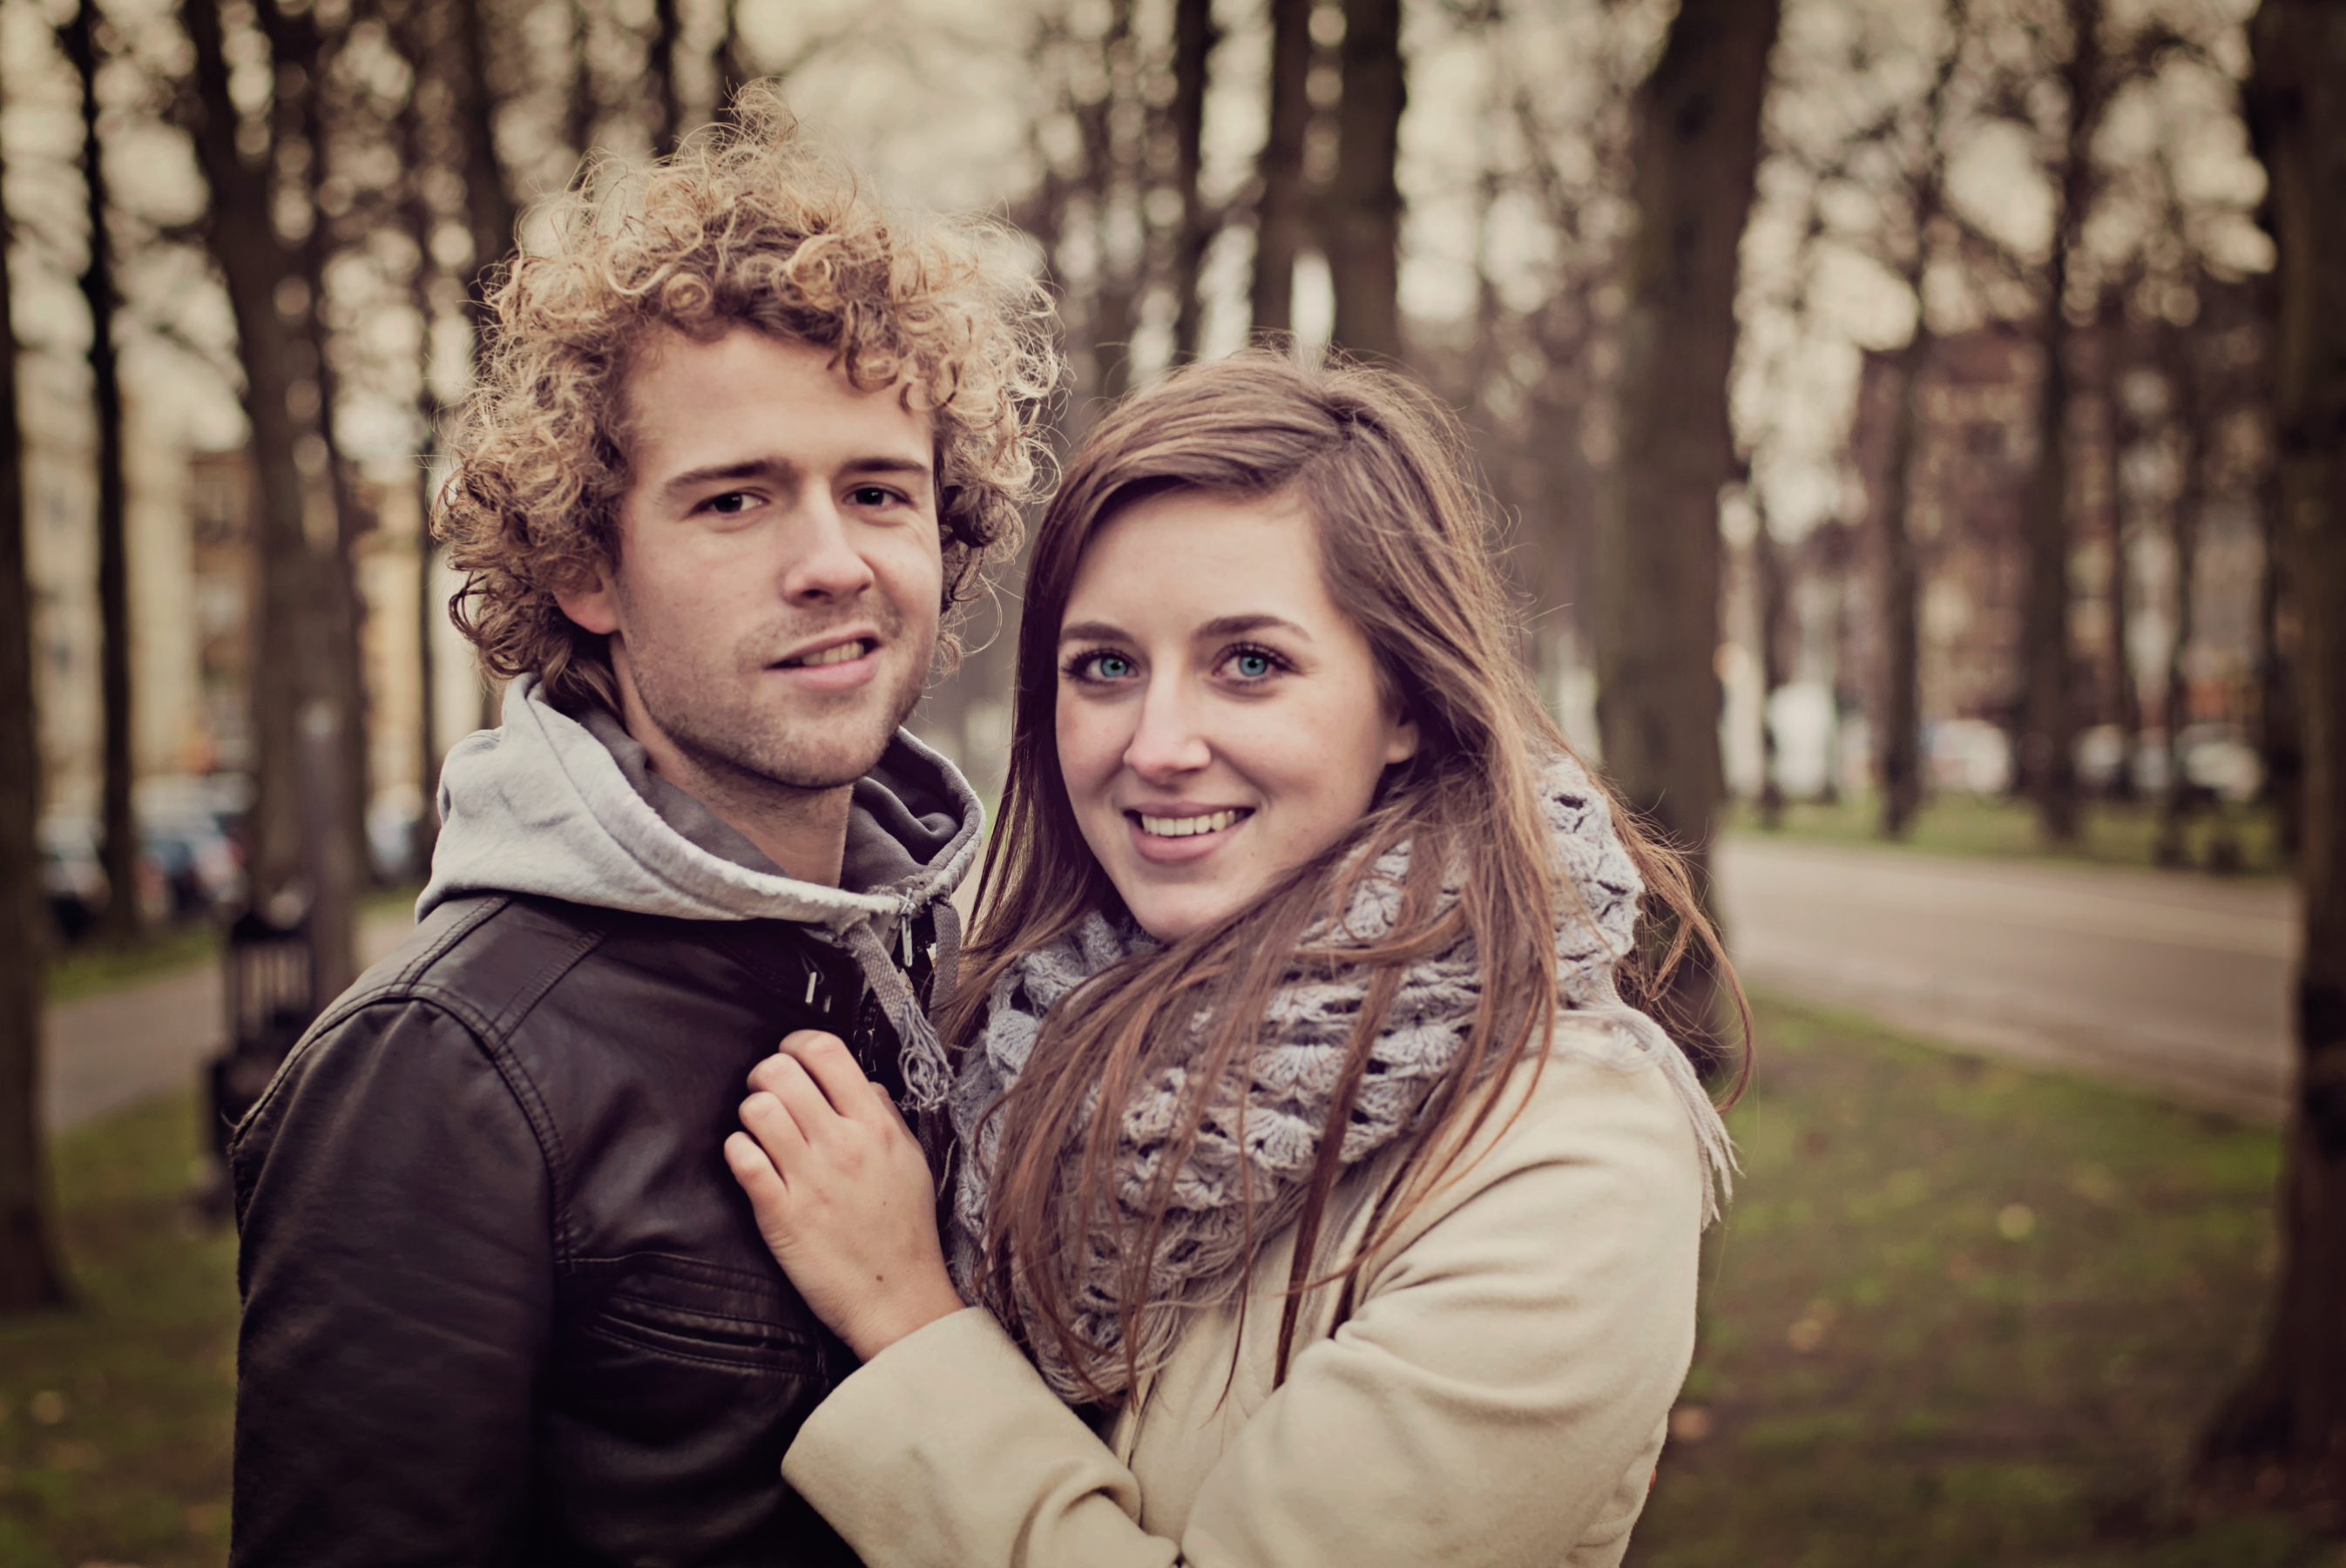 loveshoot utrecht